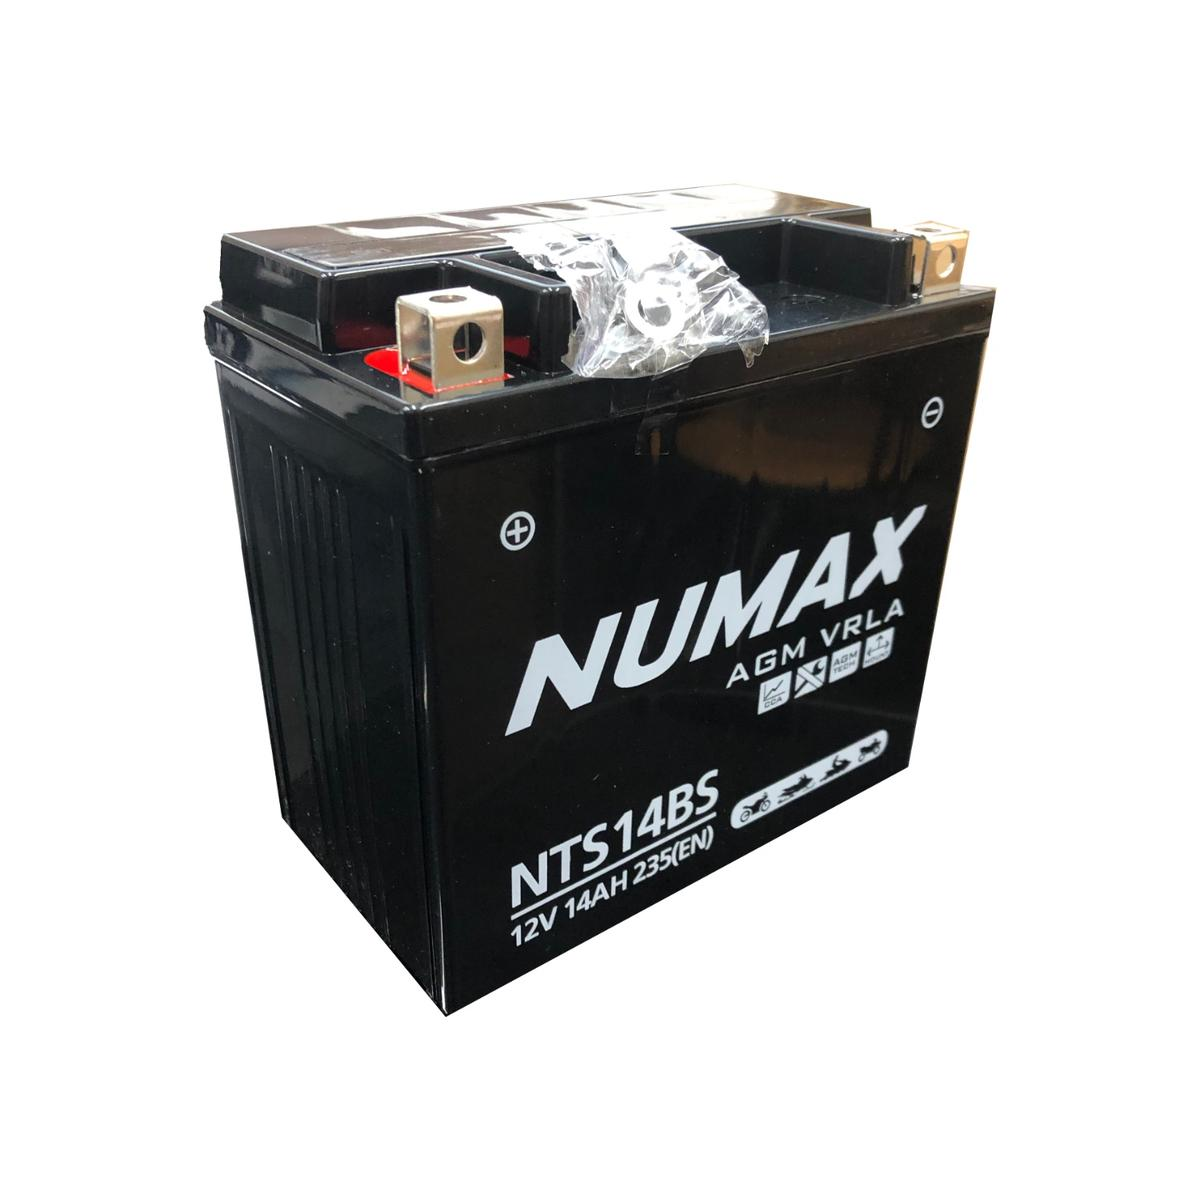 Numax NTS14BS Suzuki GSX1400 Motorbike Battery NEW